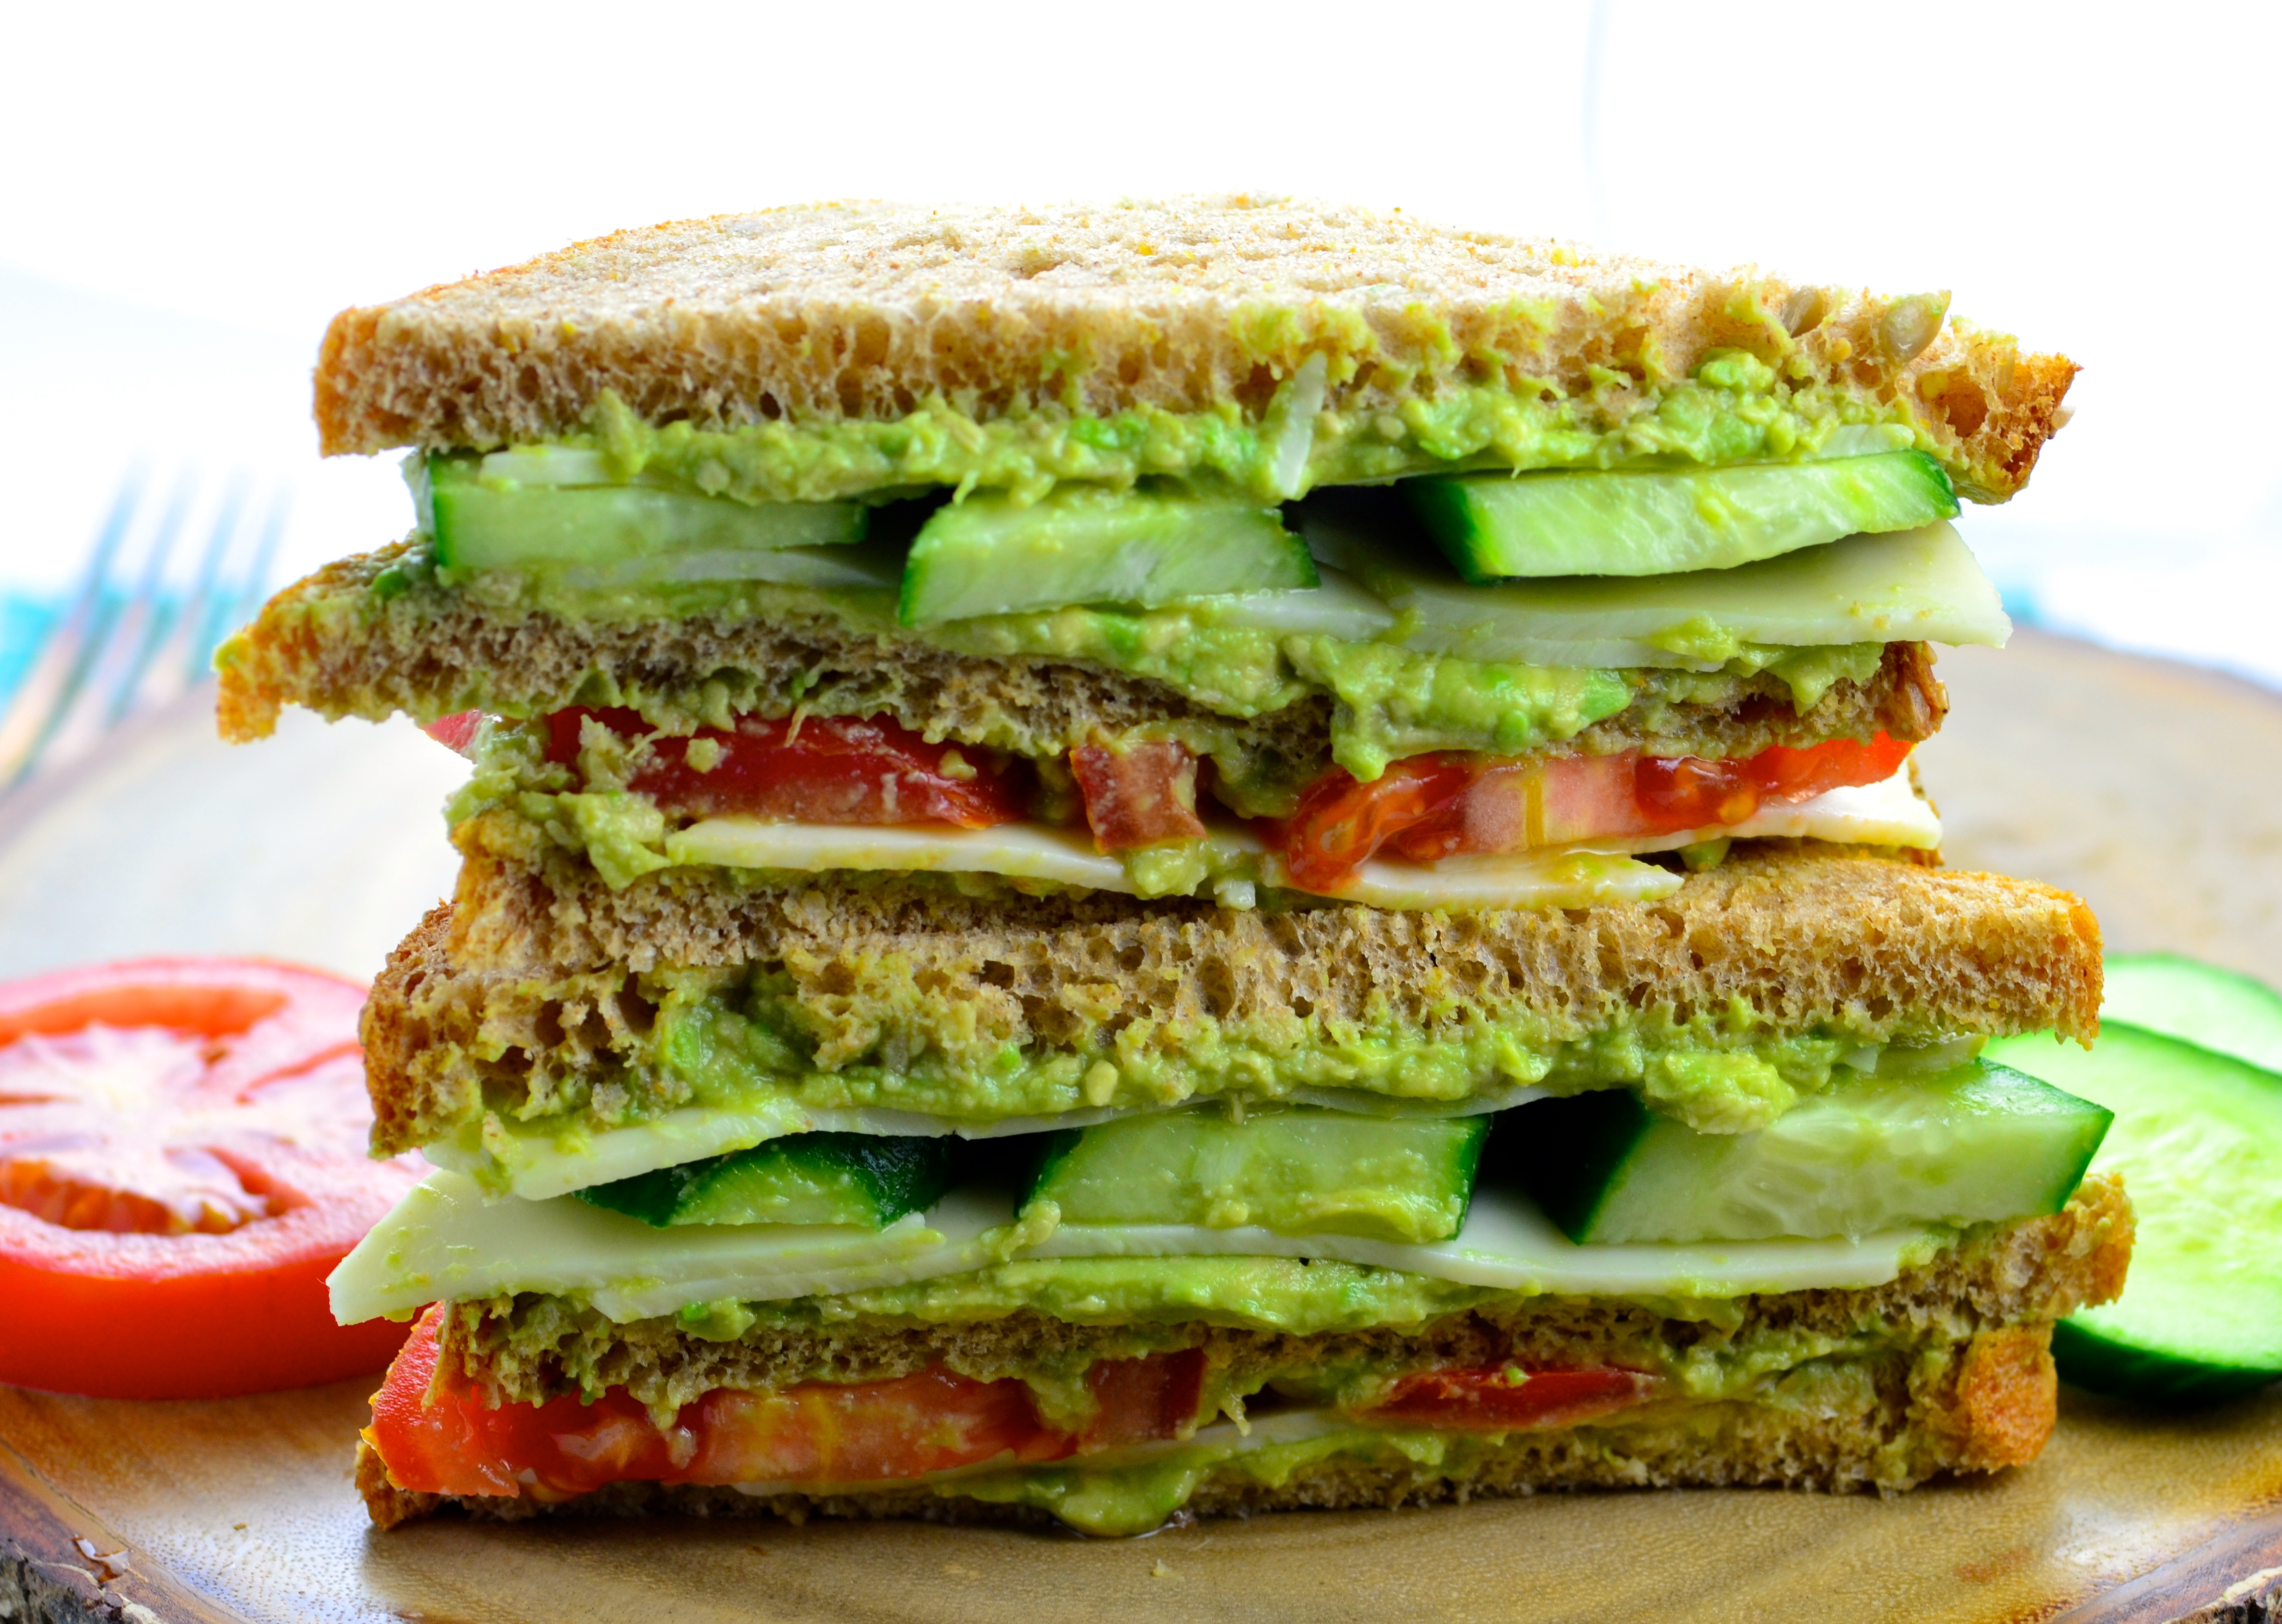 Triple Decker Wasabi Cheese & Avocado Sandwich